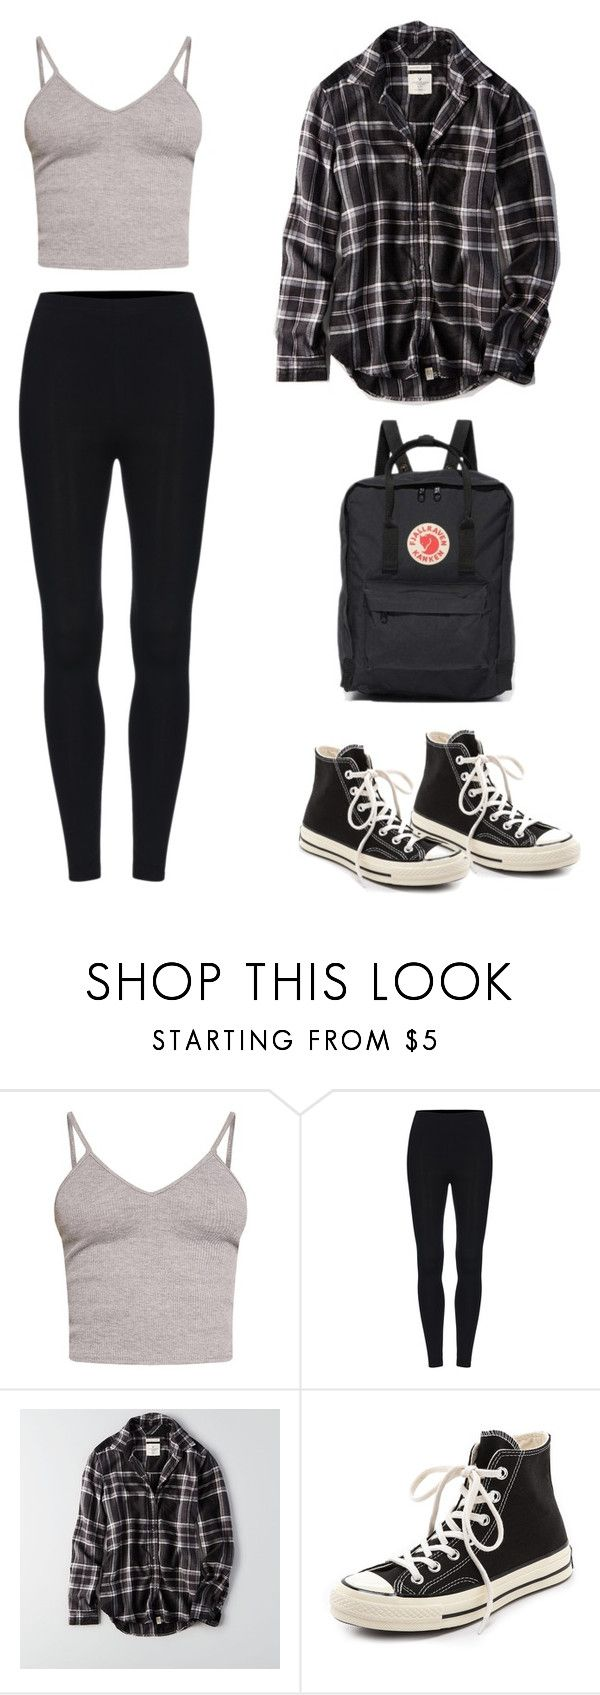 """Uni 7"" by liz-lite on Polyvore featuring BasicGrey, American Eagle Outfitters, Converse and Fjällräven"